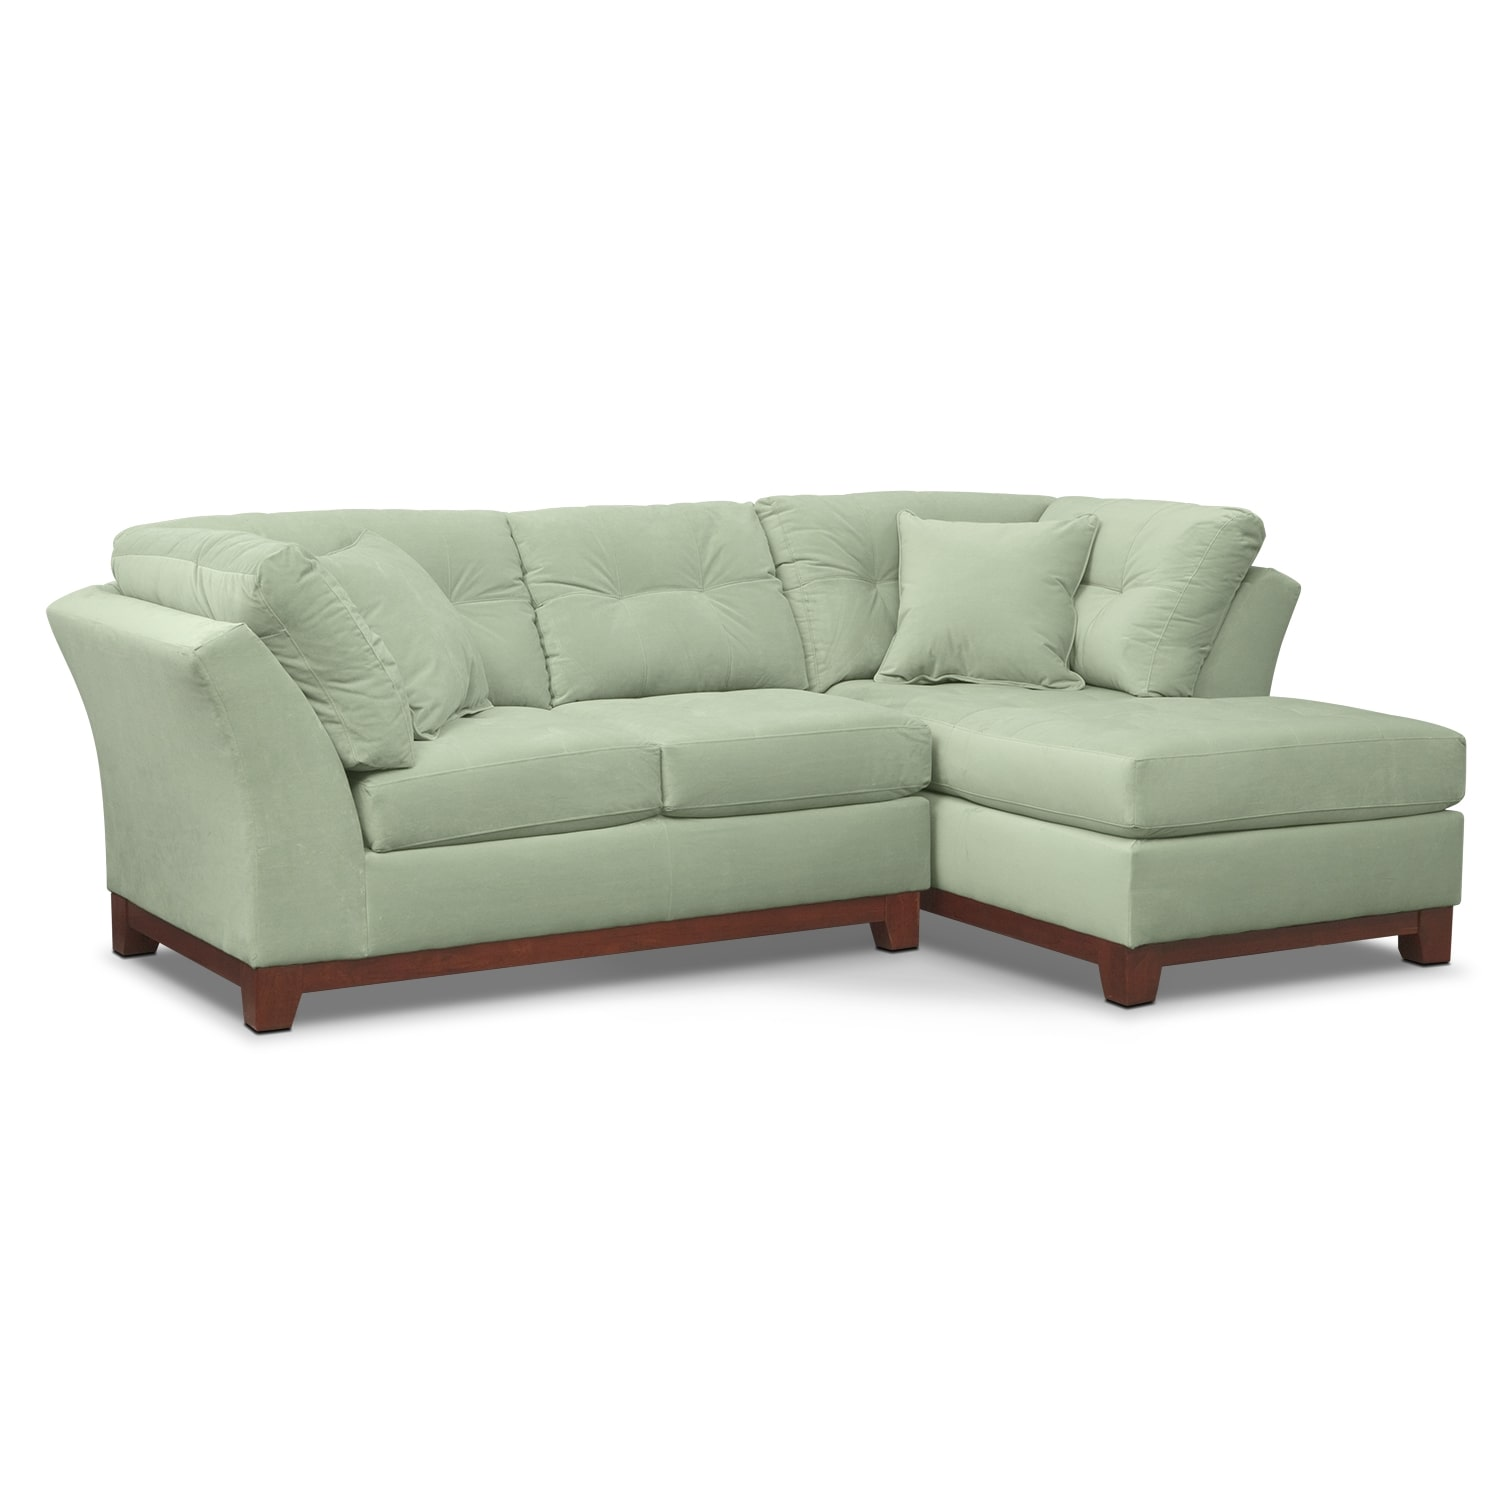 Solace 2-Piece Sectional with Right-Facing Chaise - Spa